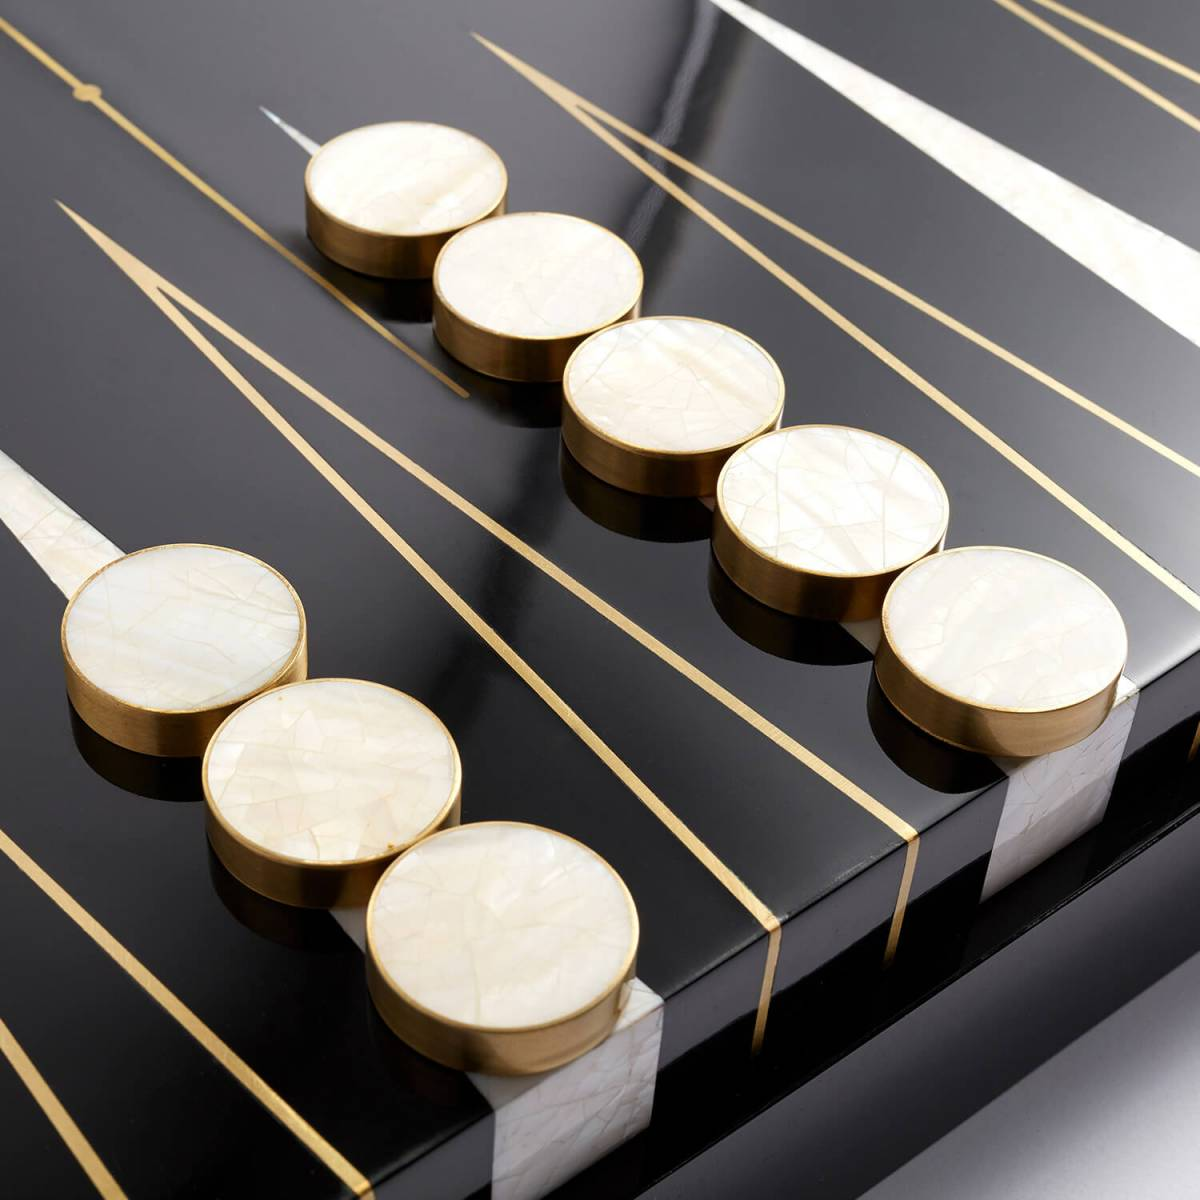 Backgammon set from L'Objet